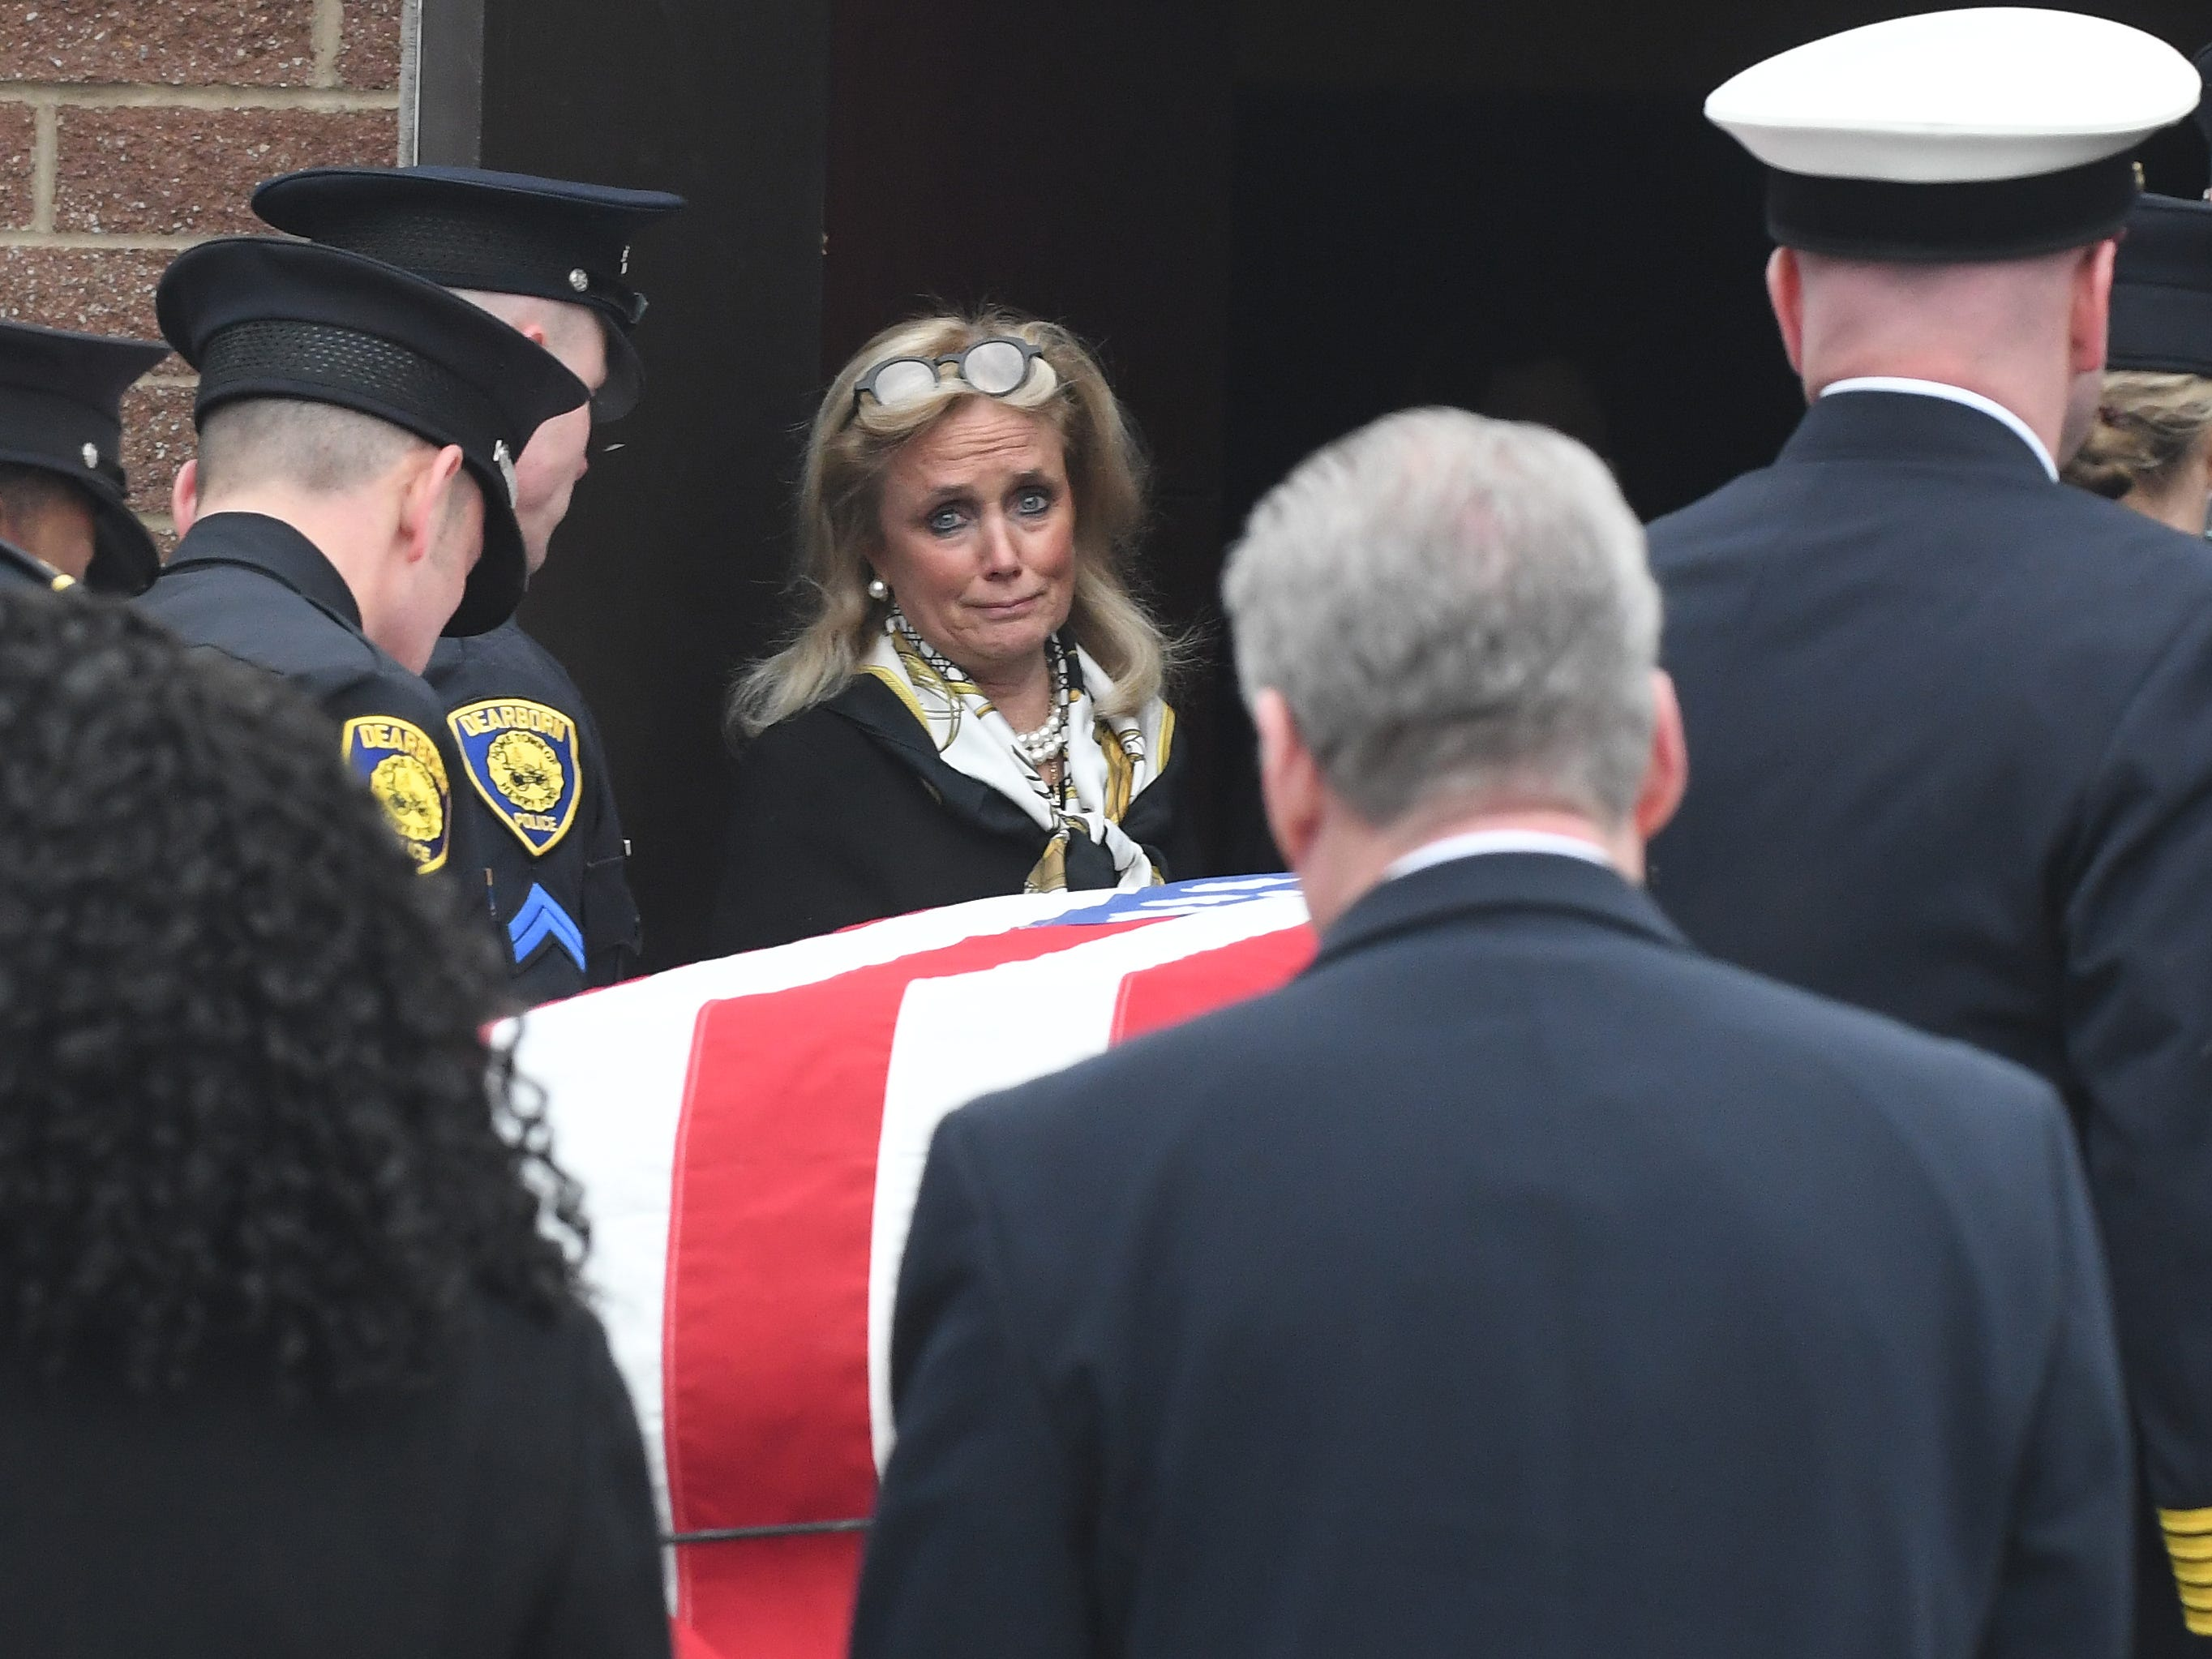 U.S. Rep. Debbie Dingell waits at the door as the casket of her husband, retired U.S. Rep. John D. Dingell, arrives for the public viewing Monday at the Ford Community and Performing Arts Center in Dearborn.